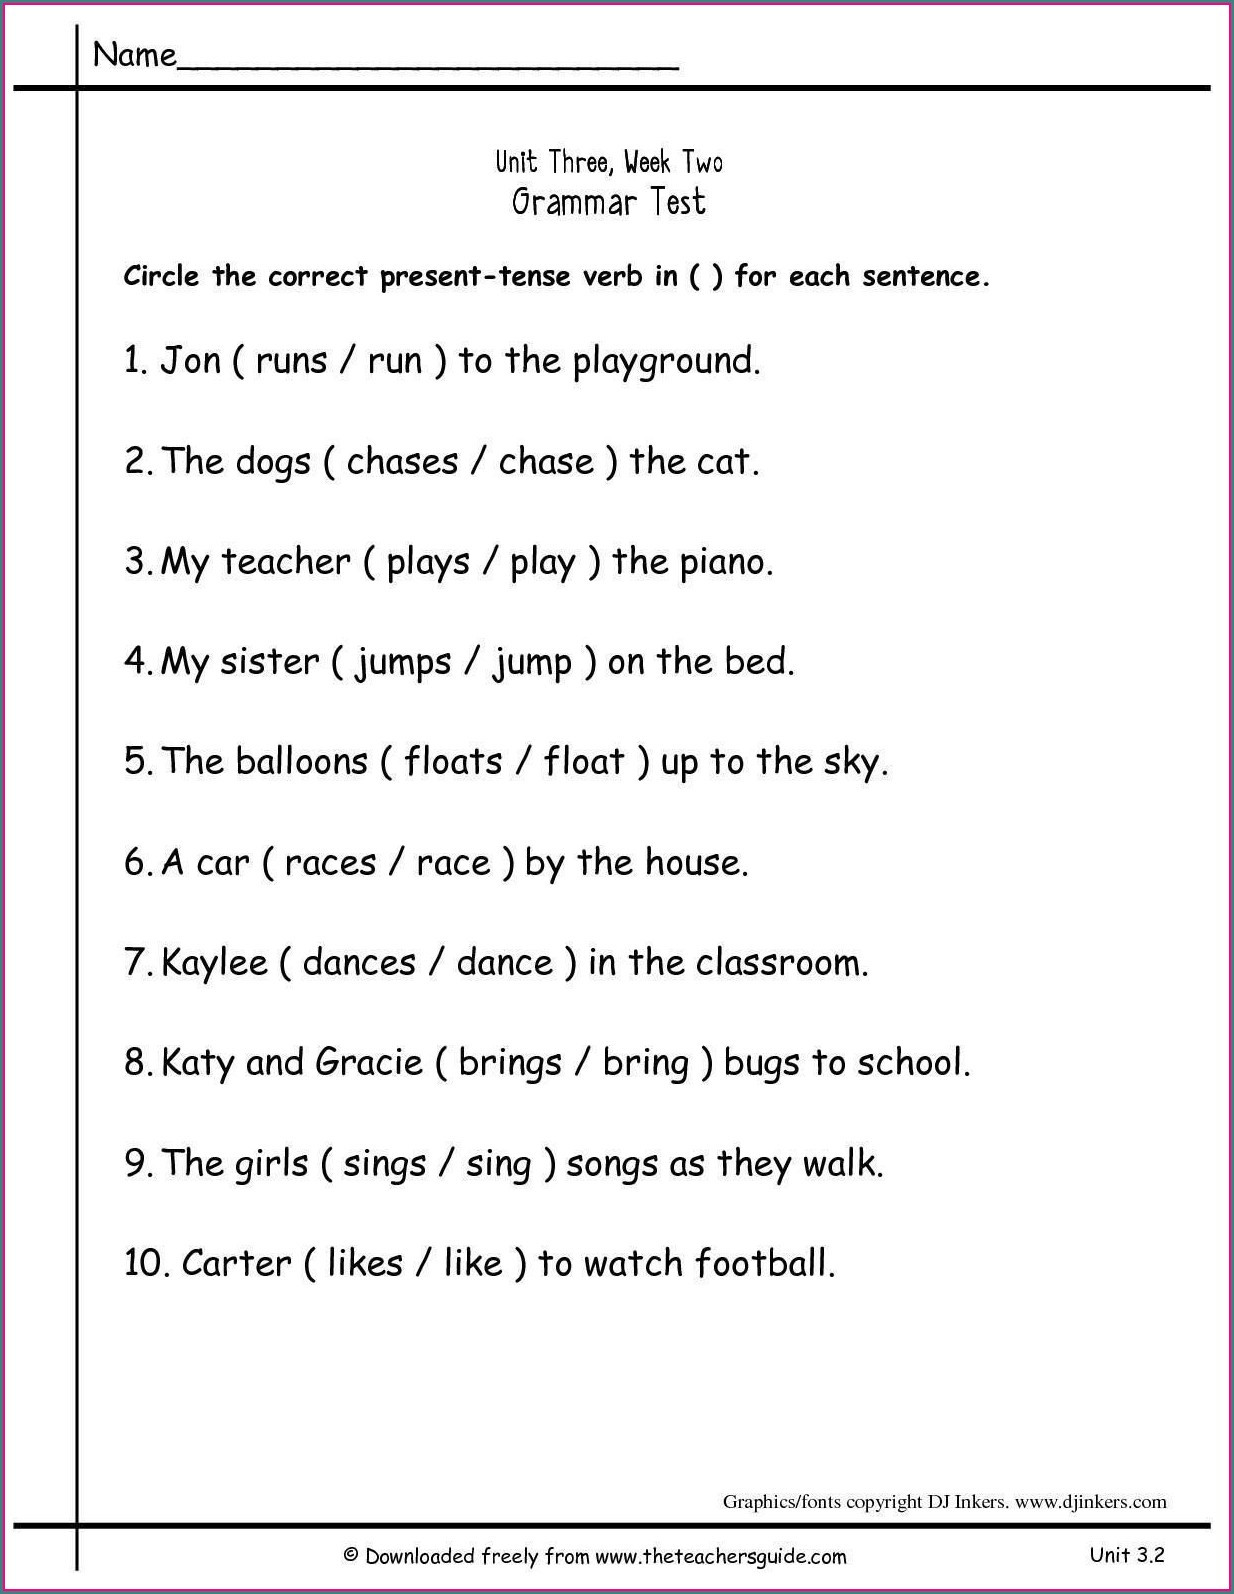 Grammar Worksheet 1st Grade Math Worksheet 2nd Grade Grammarets Second Printable Free